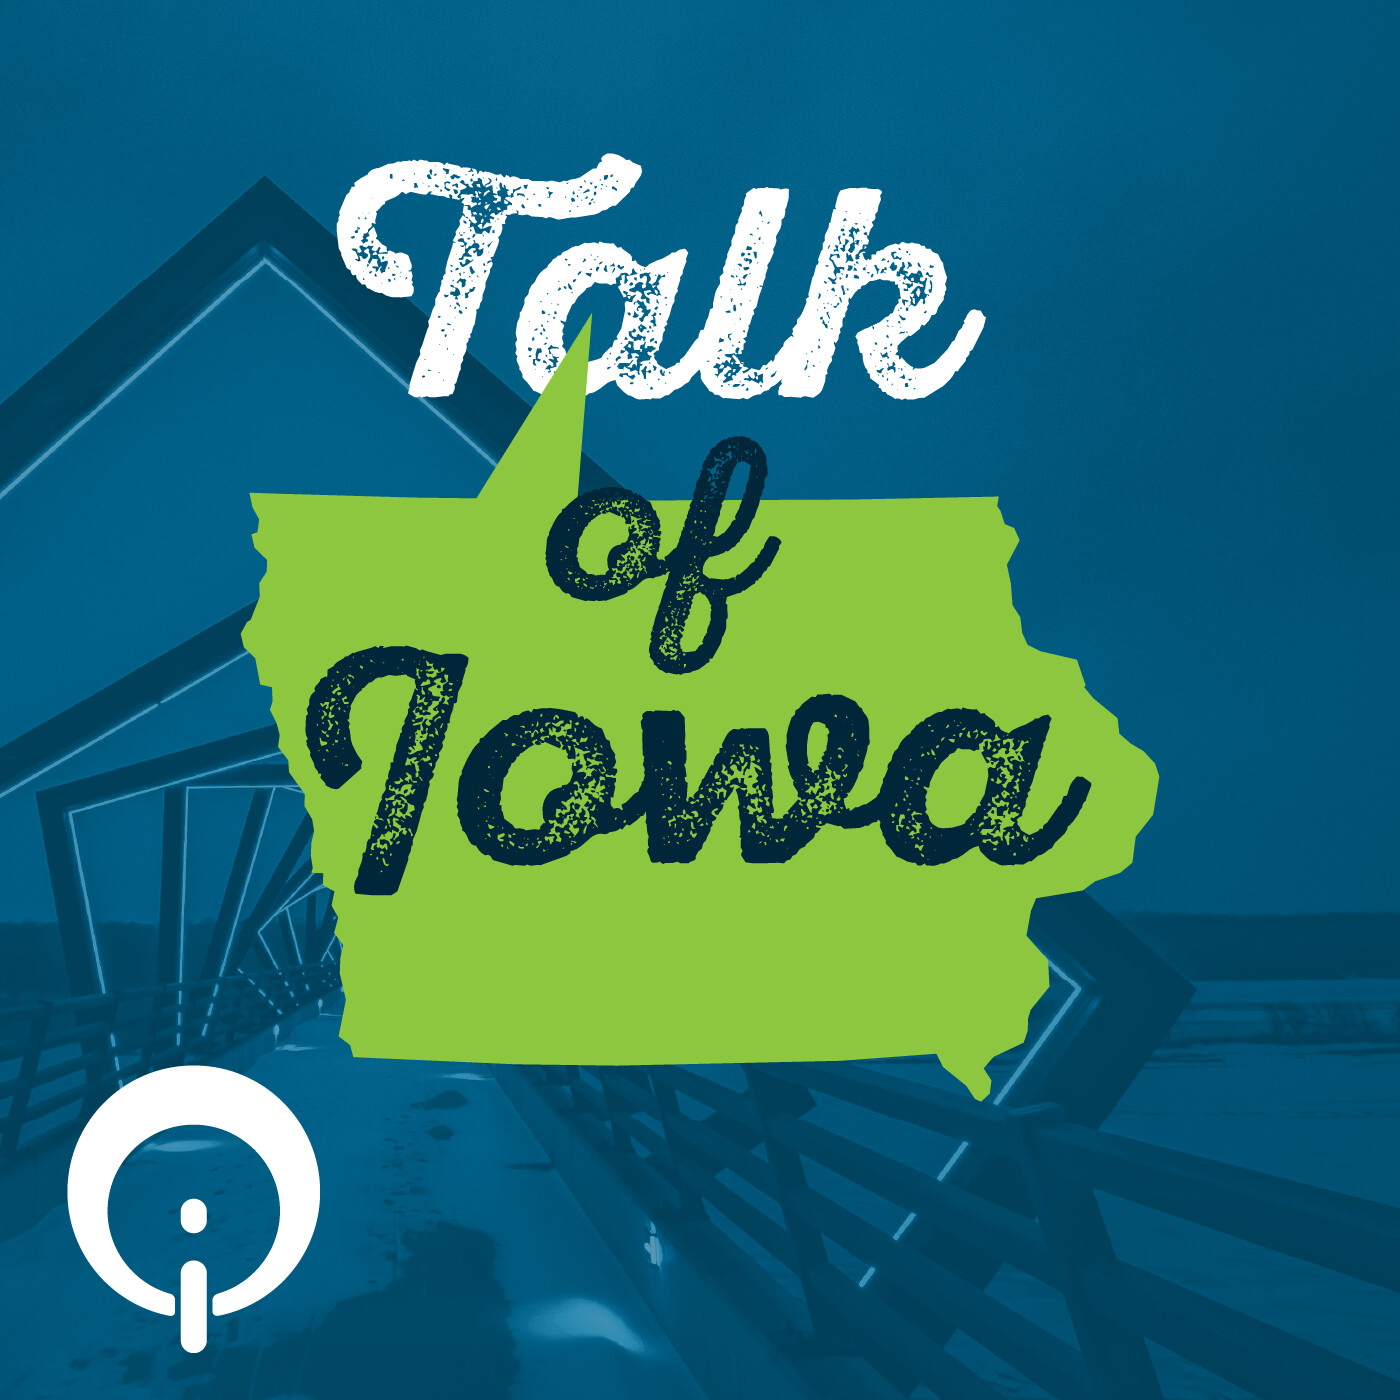 Combating Systemic Racism In Iowa